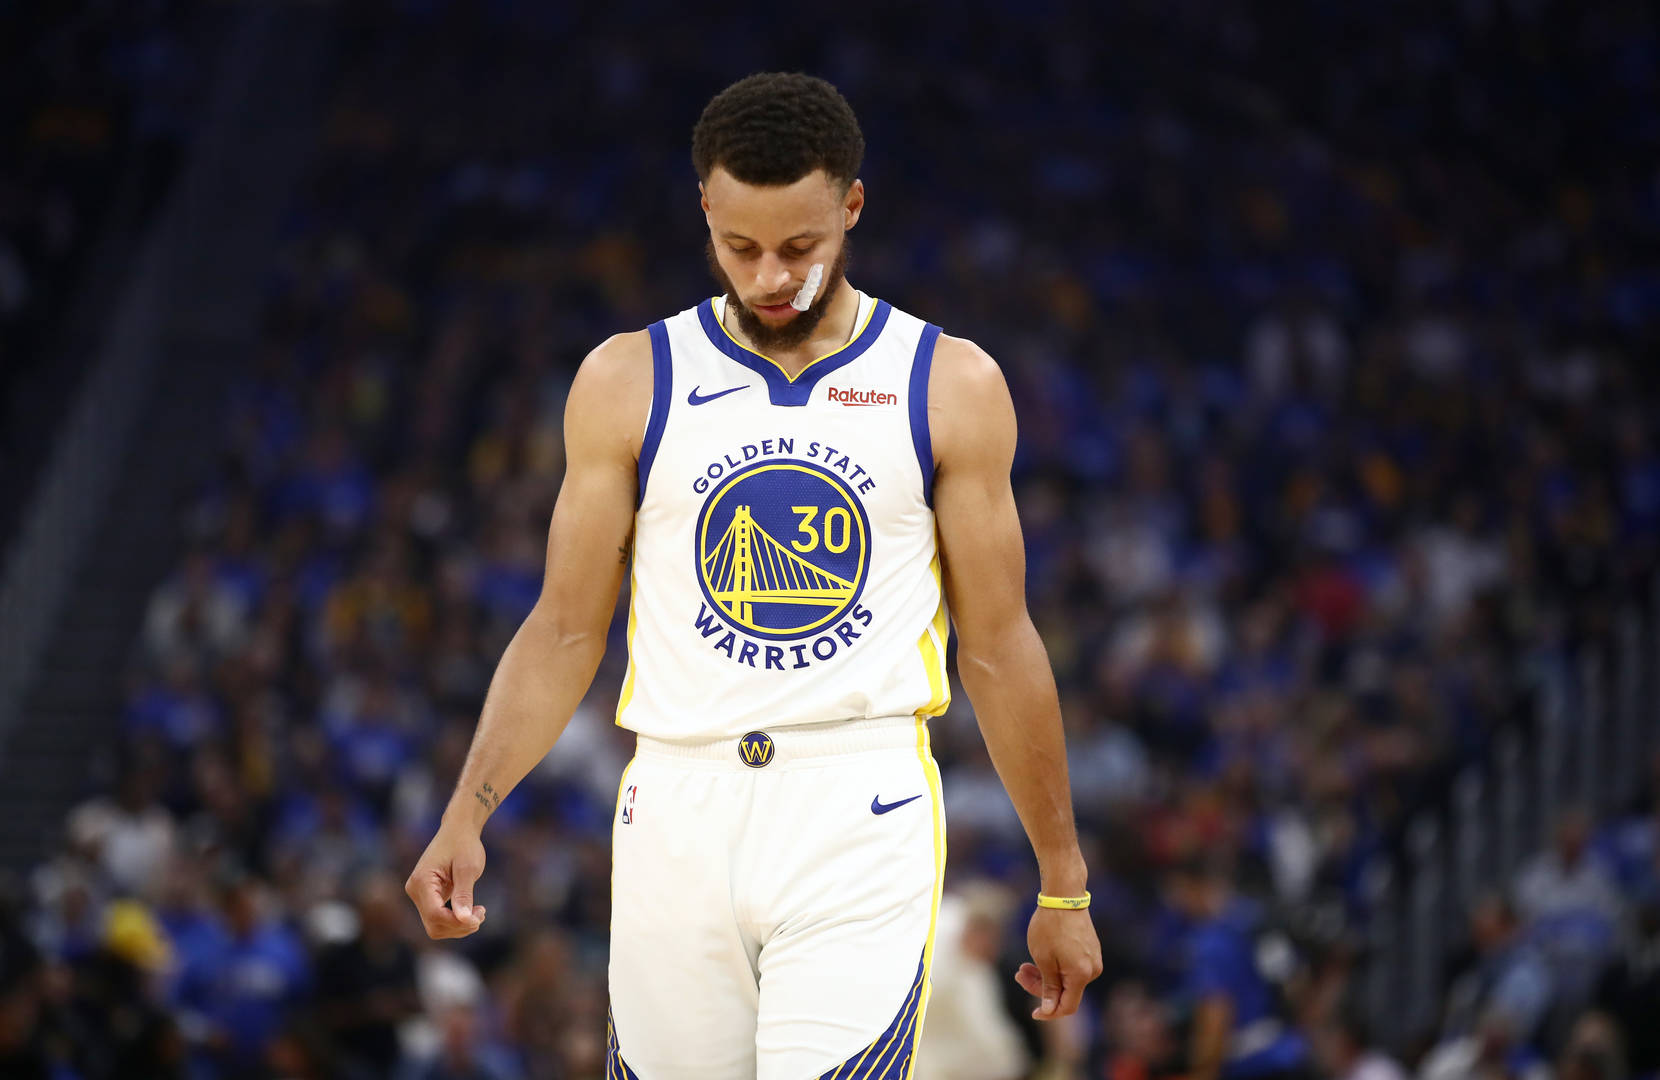 Golden State Warriors Steph Curry will miss the rest of the season